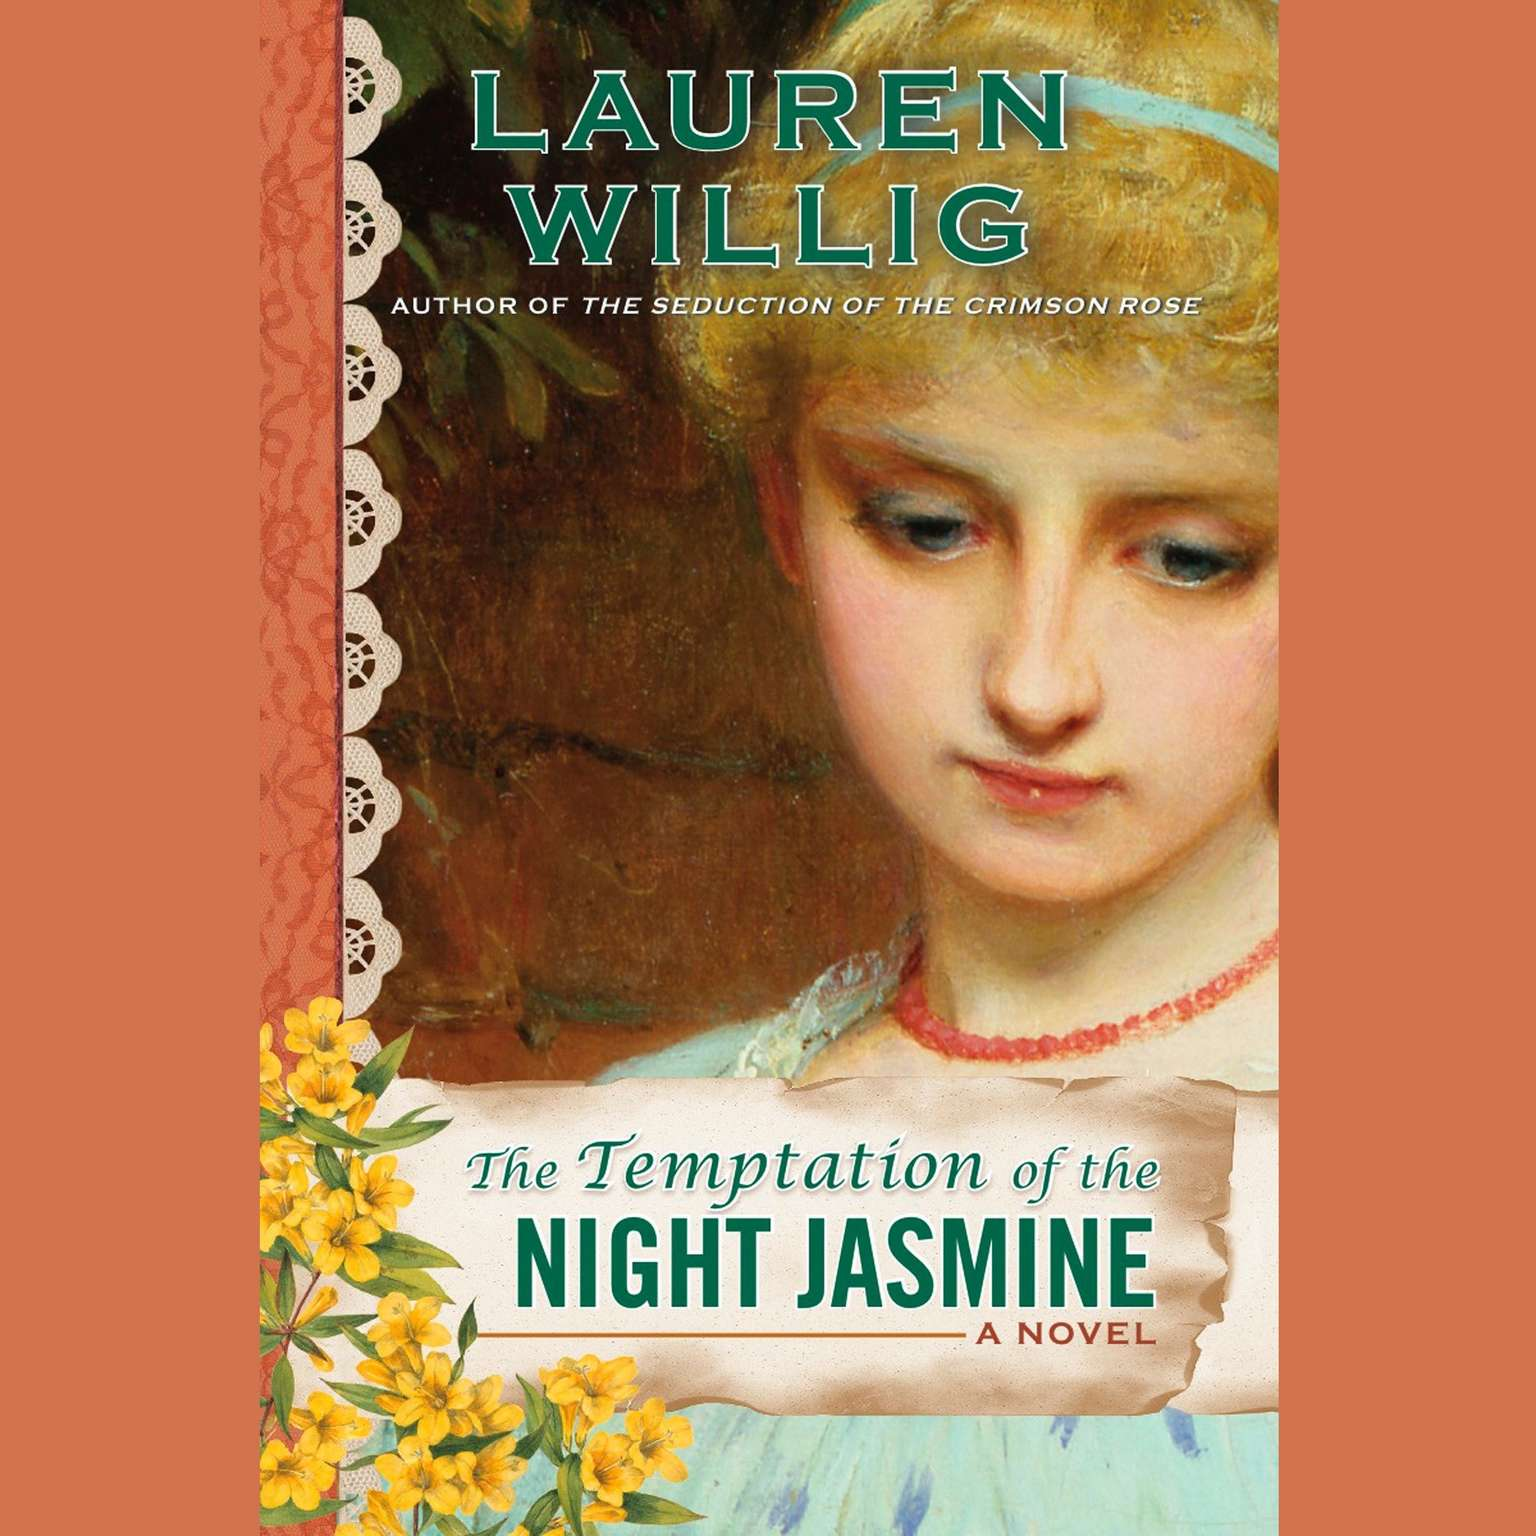 Printable The Temptation of the Night Jasmine Audiobook Cover Art